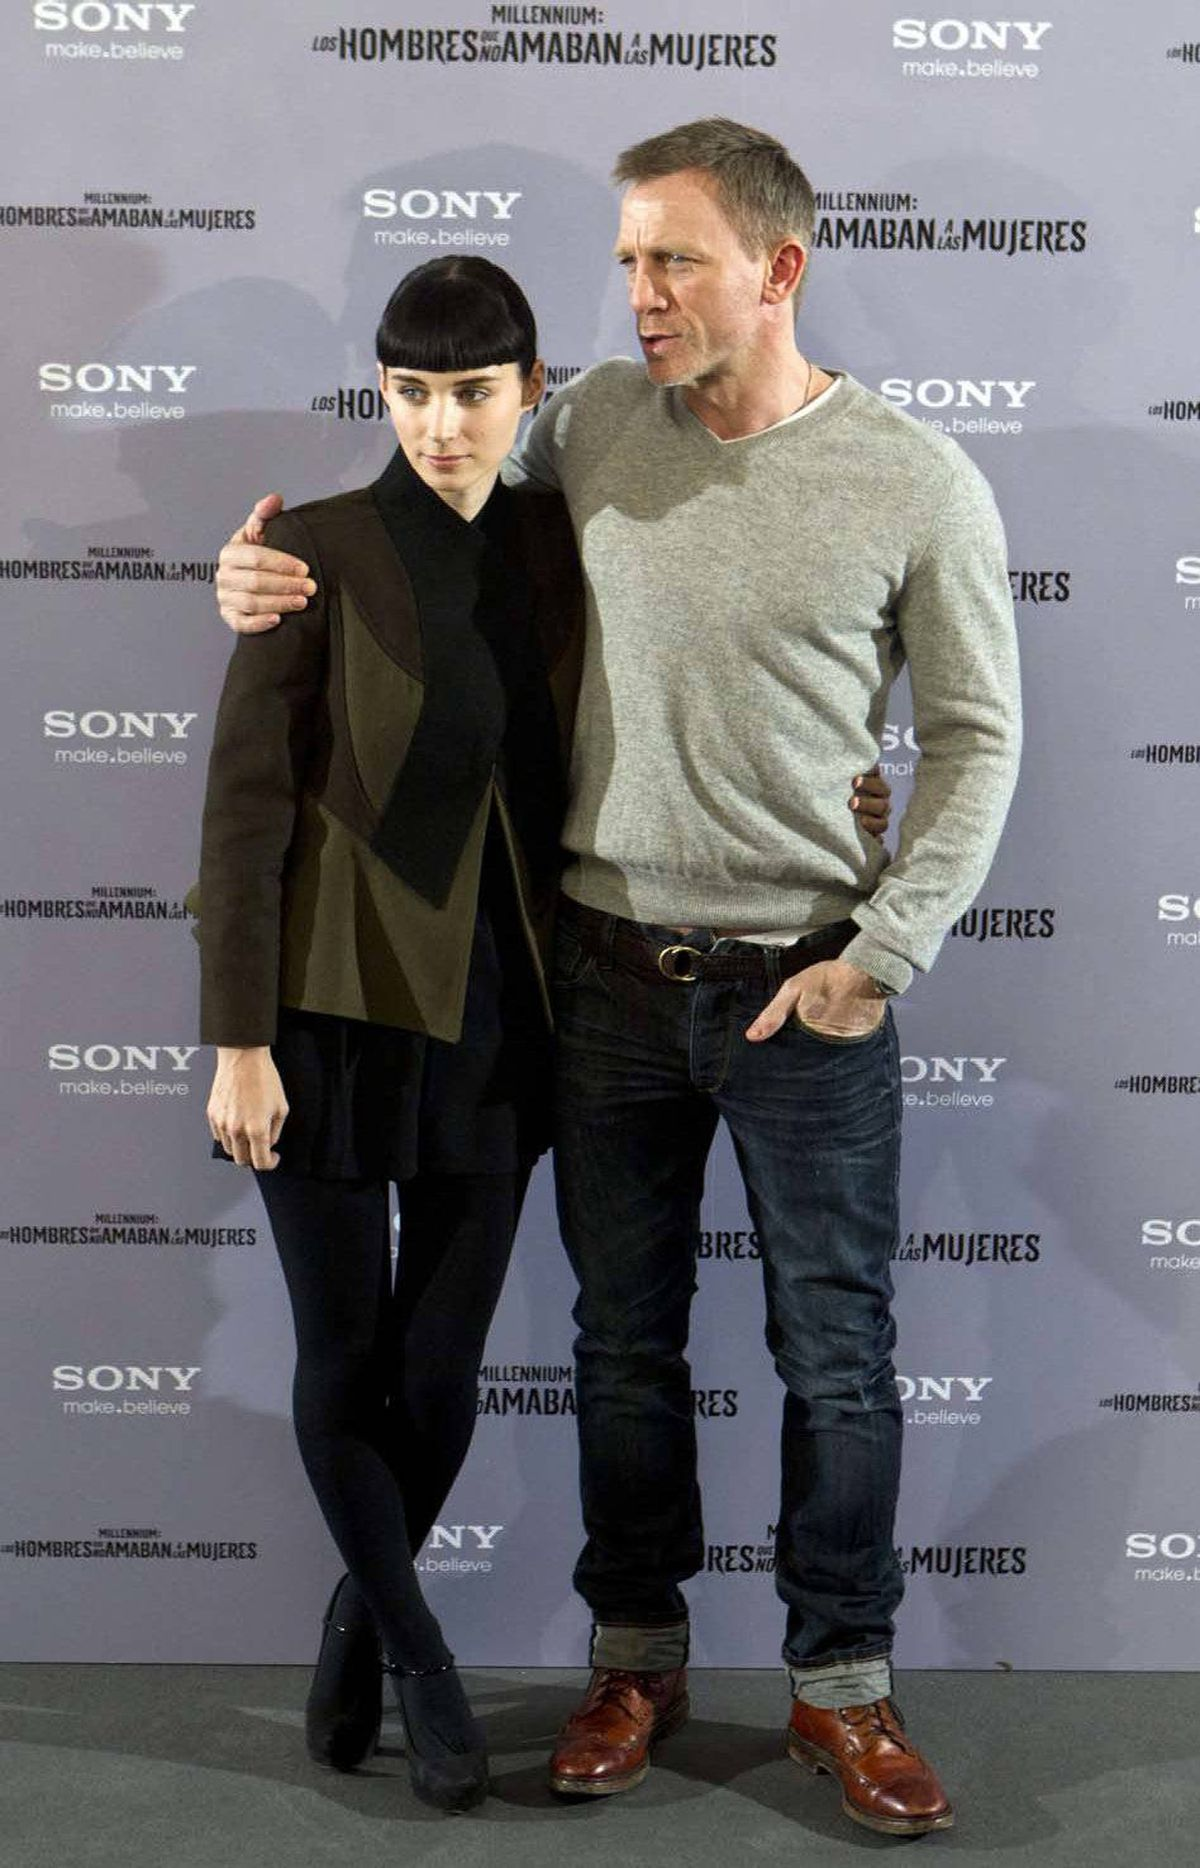 """Daniel Craig poses with his pants undone while holding Rooney Mara at the Spanish premiere of """"The Girl with the Dragon Tattoo"""" in Madrid last week."""